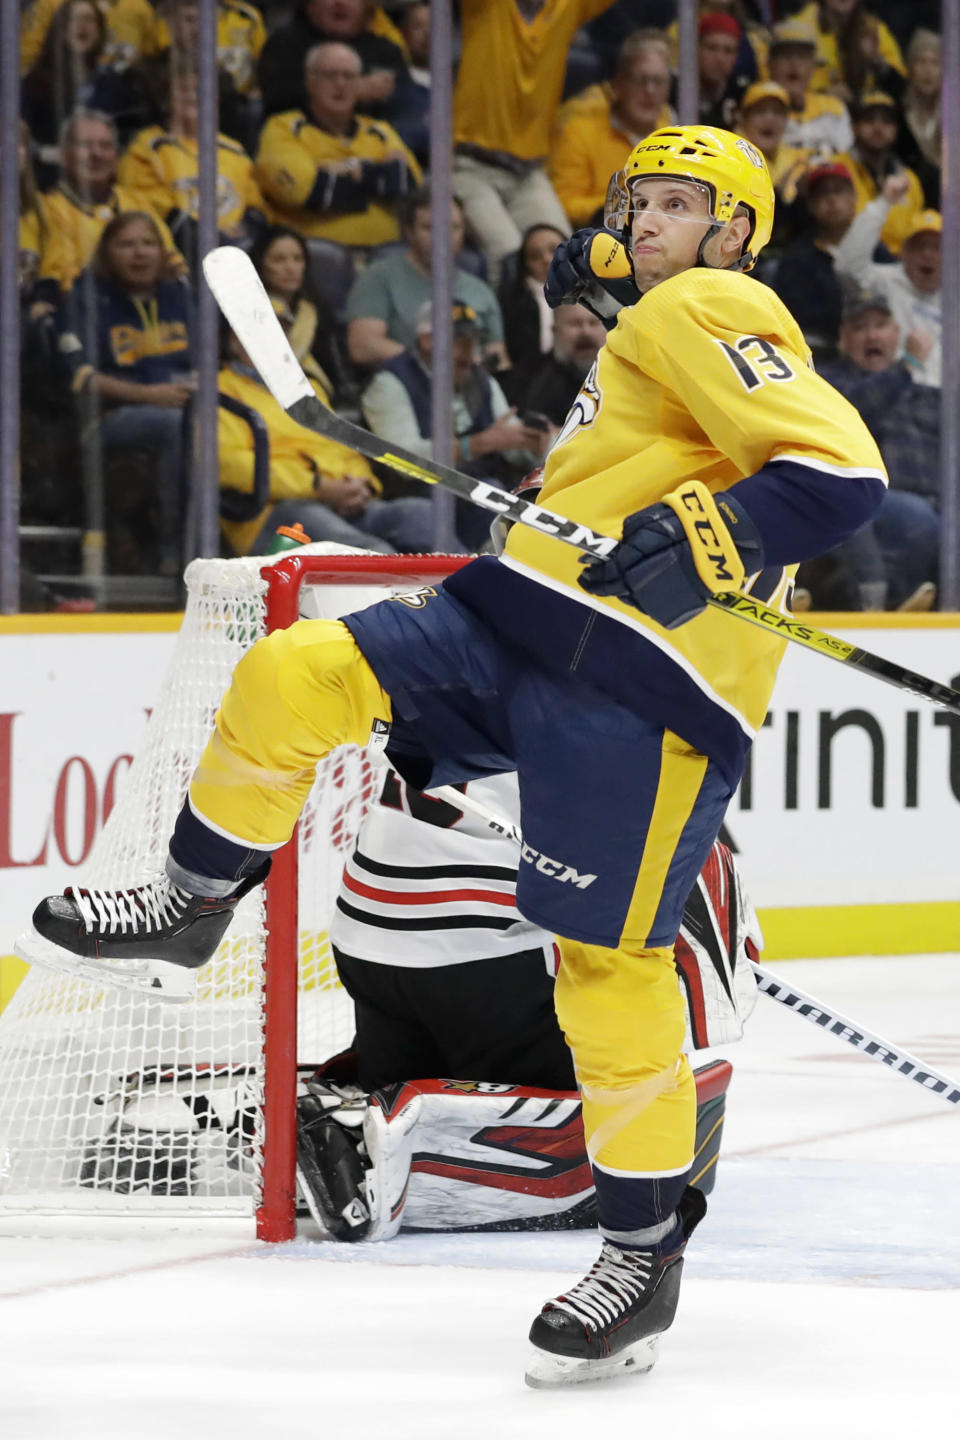 Nashville Predators center Nick Bonino celebrates after scoring his second goal of the night against the Chicago Blackhawks, during the second period of an NHL hockey game Tuesday, Oct. 29, 2019, in Nashville, Tenn. Bonino scored all three of Nashville's goals as the Predators won 3-0. (AP Photo/Mark Humphrey)